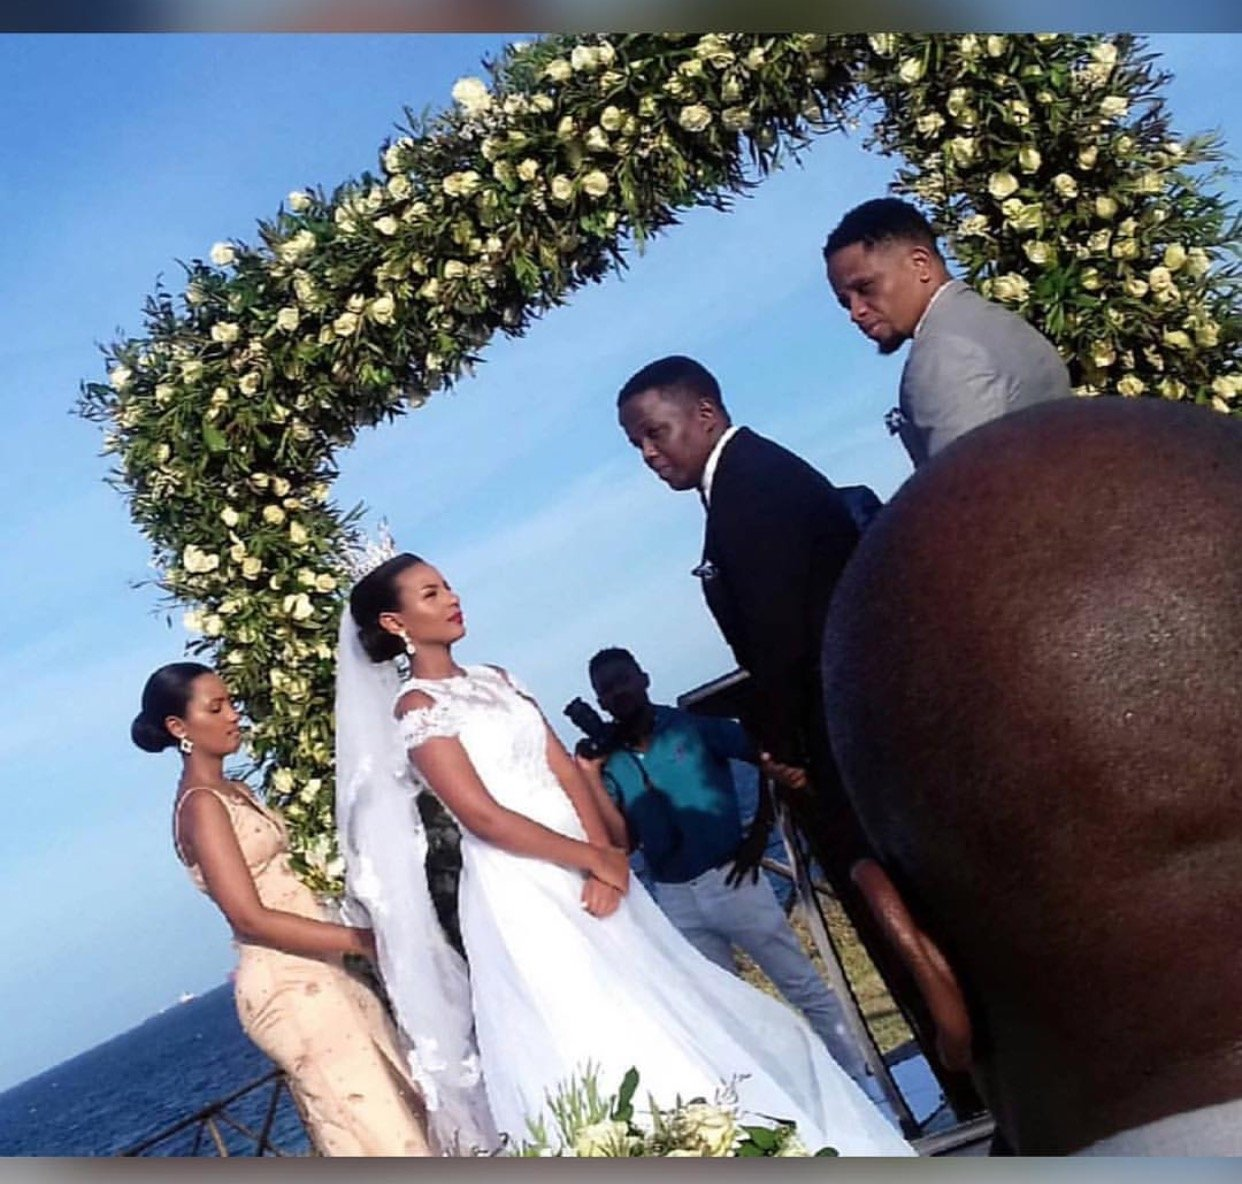 AY finally weds his lovely bride in colorful wedding (Photos)